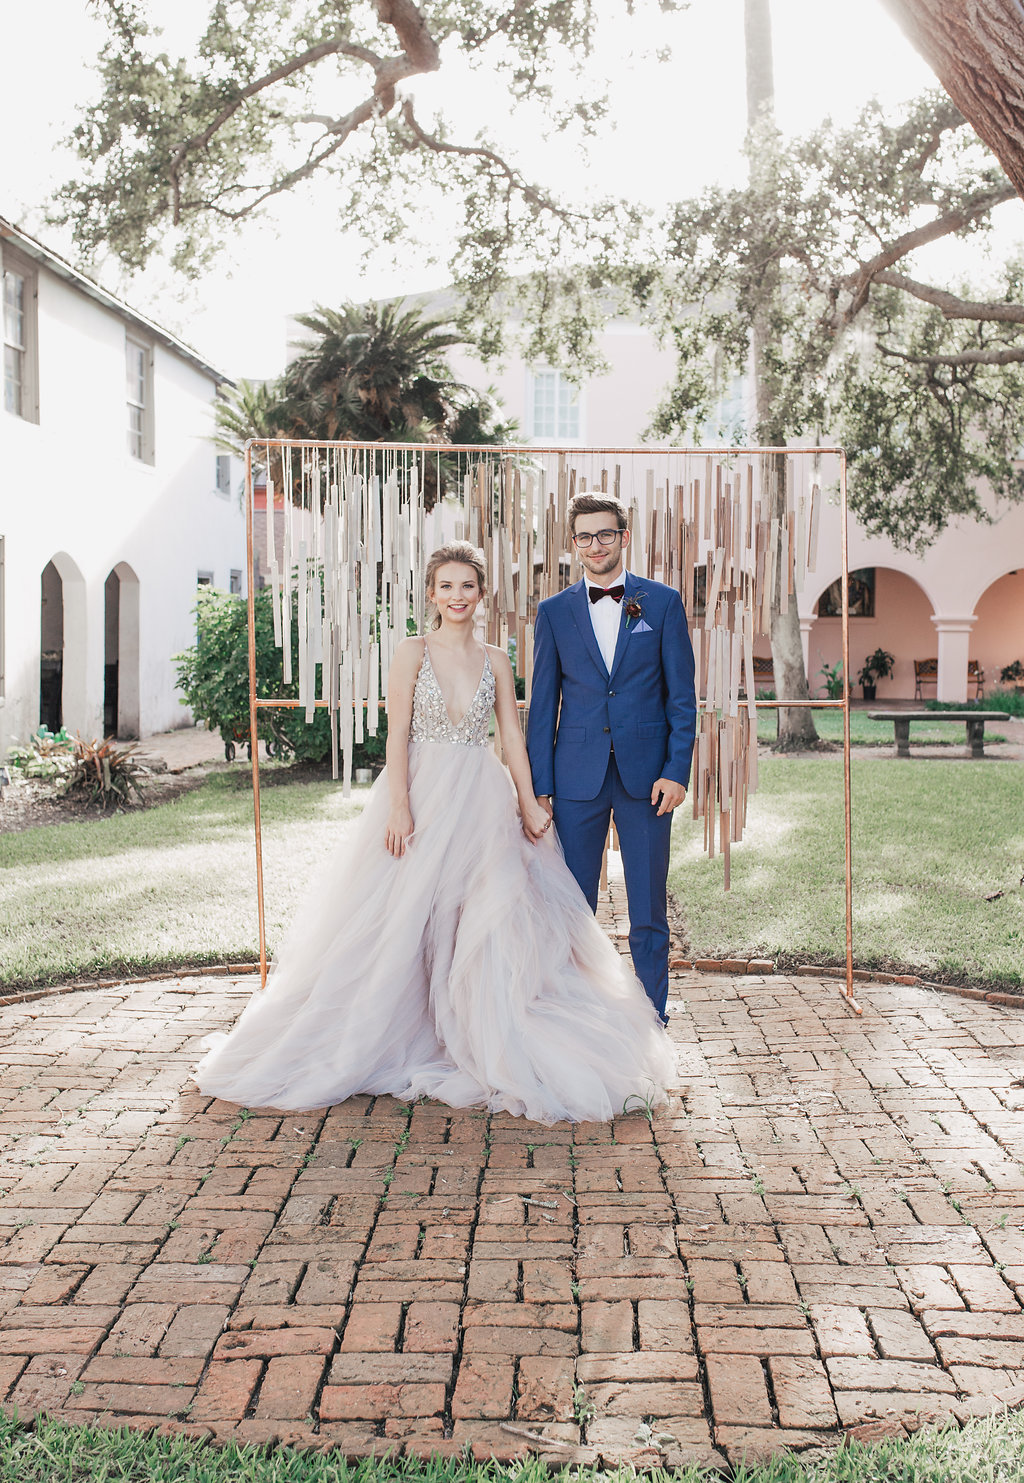 Jewel Toned Wedding Ideas with a Surprise Proposal - photo by Alondra Vega Photography http://ruffledblog.com/jewel-toned-wedding-ideas-with-a-surprise-proposal